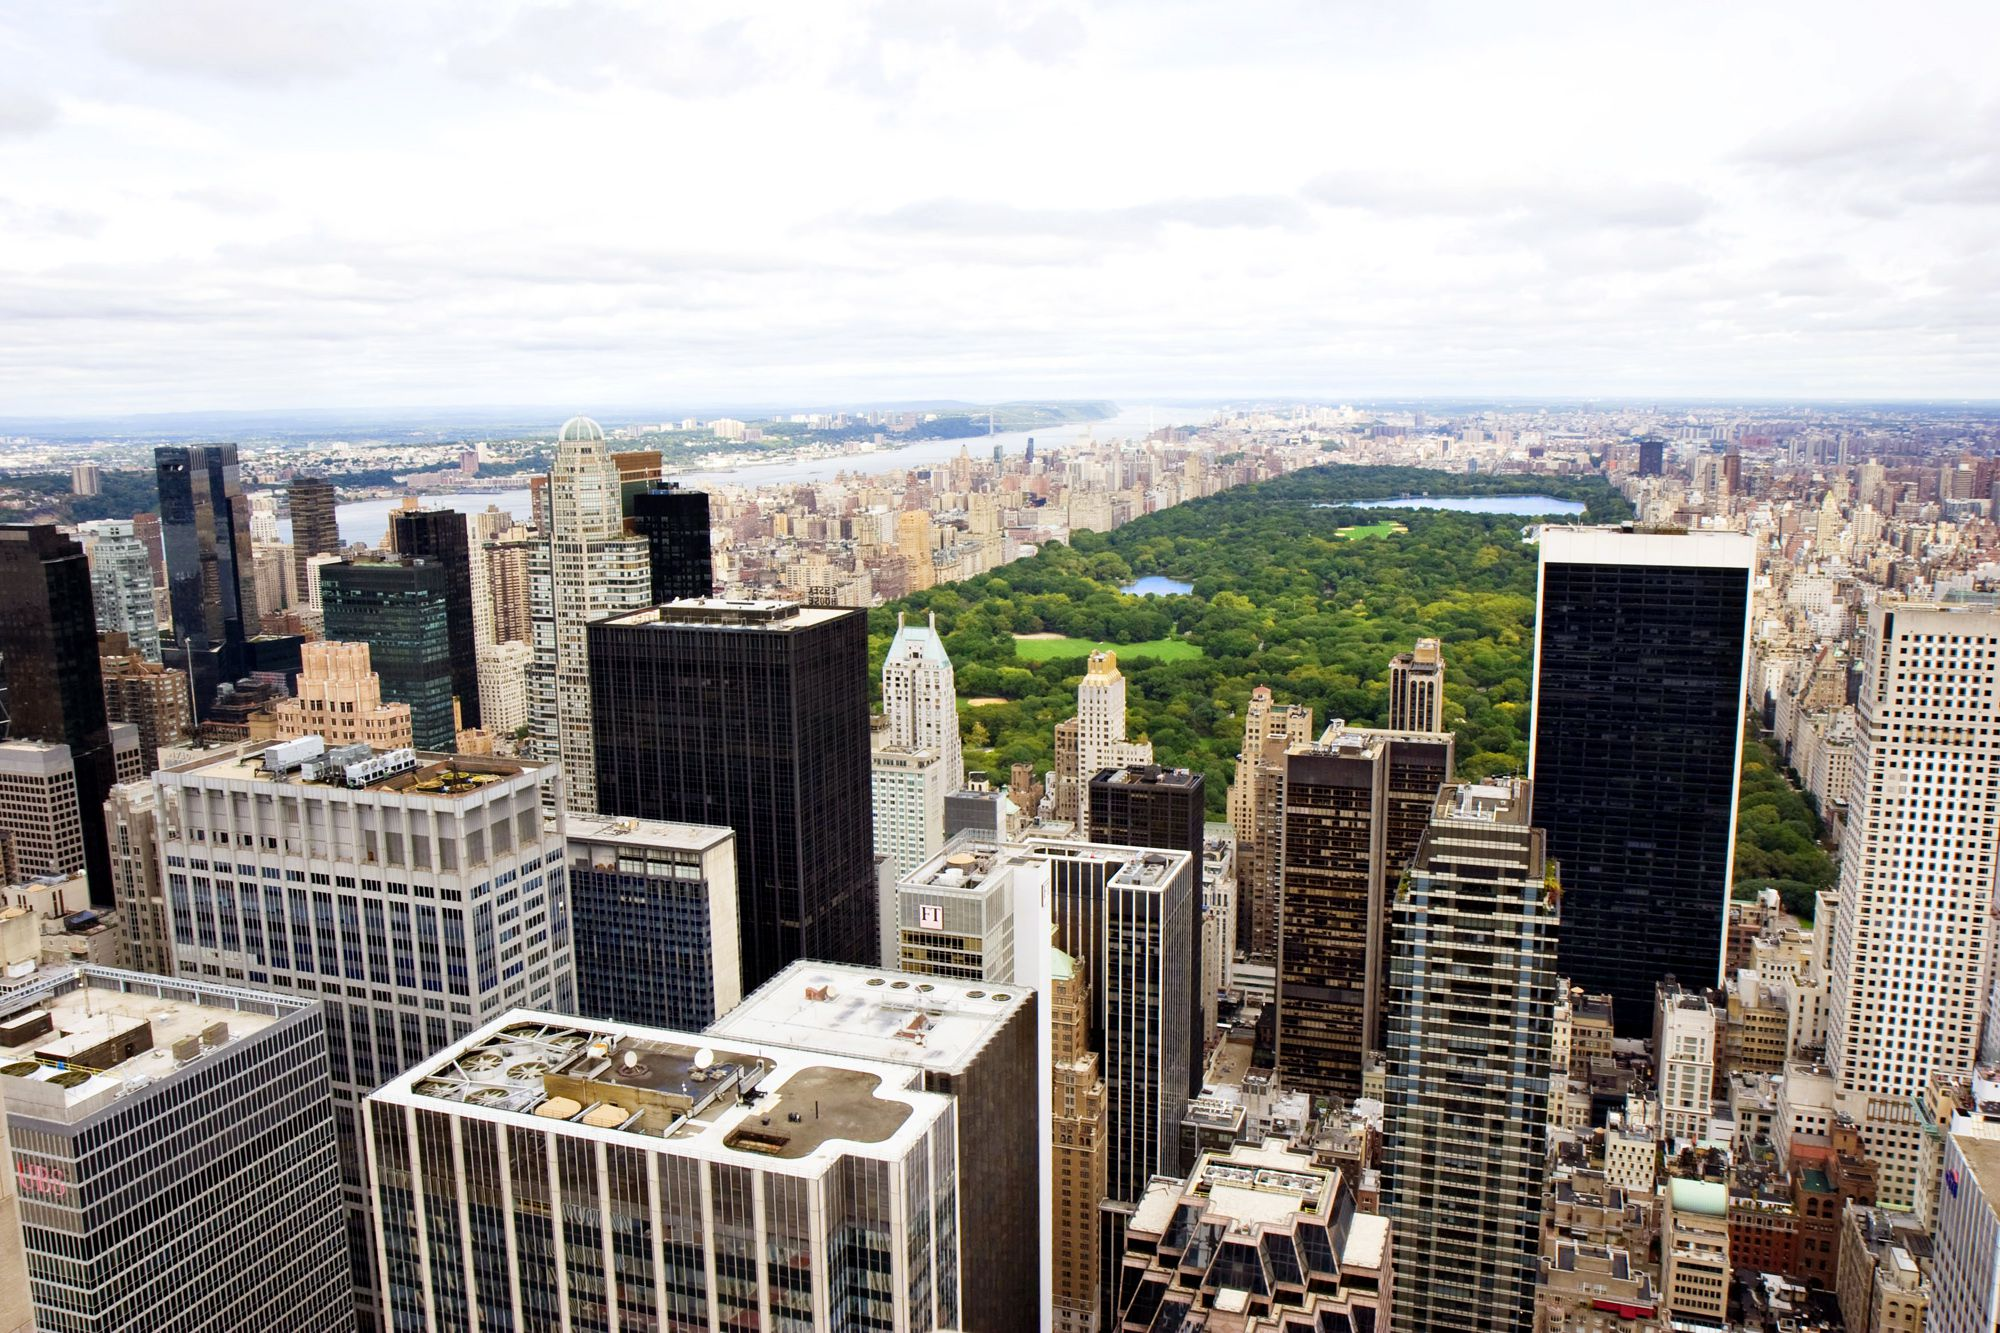 Top 10 things to do in nyc for first time visitors for 10 top things to do in nyc